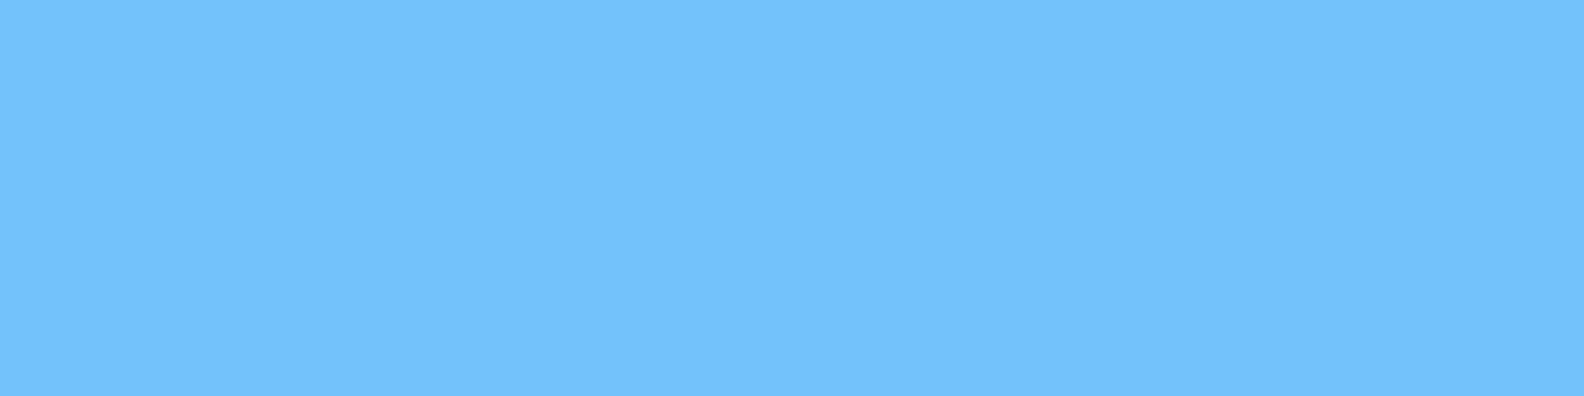 1584x396 Maya Blue Solid Color Background